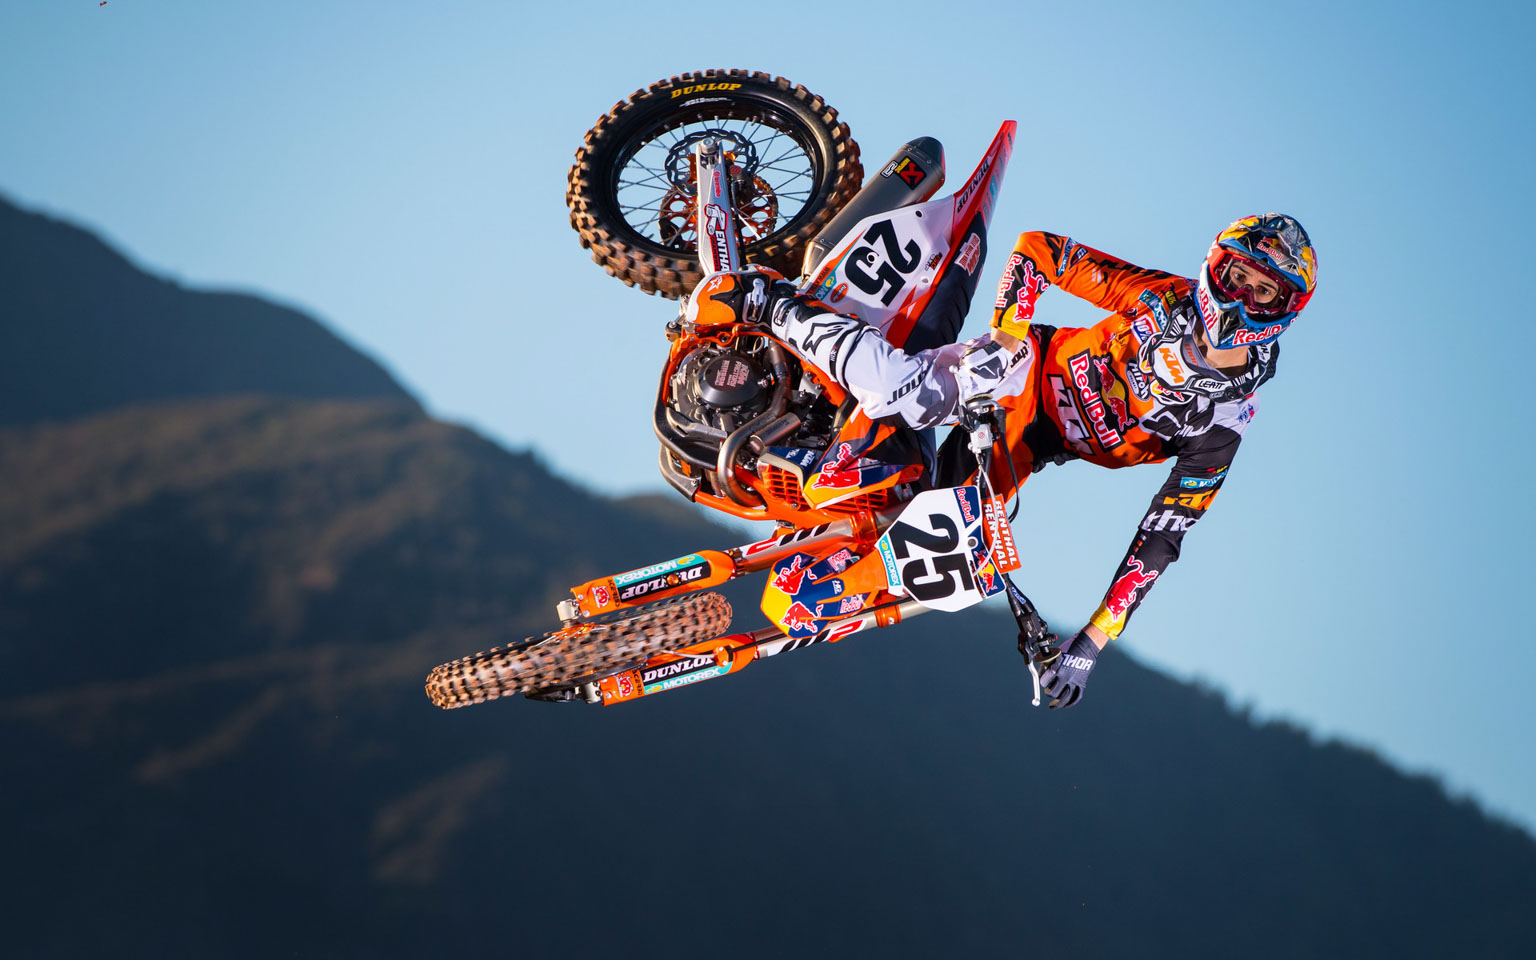 Marvin Musquin is a man on form